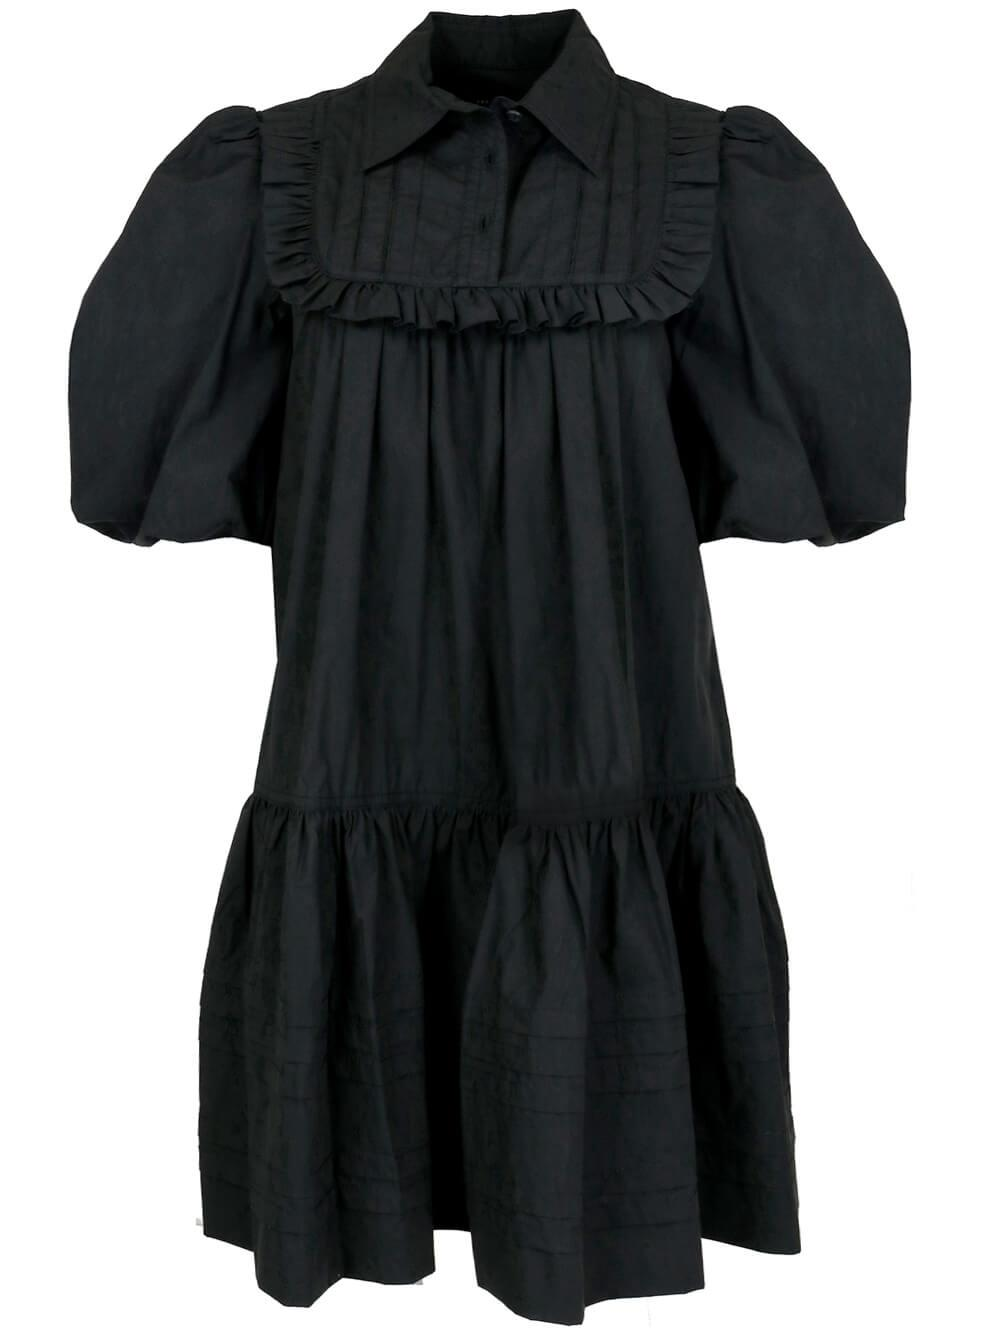 Johannes Mini Dress